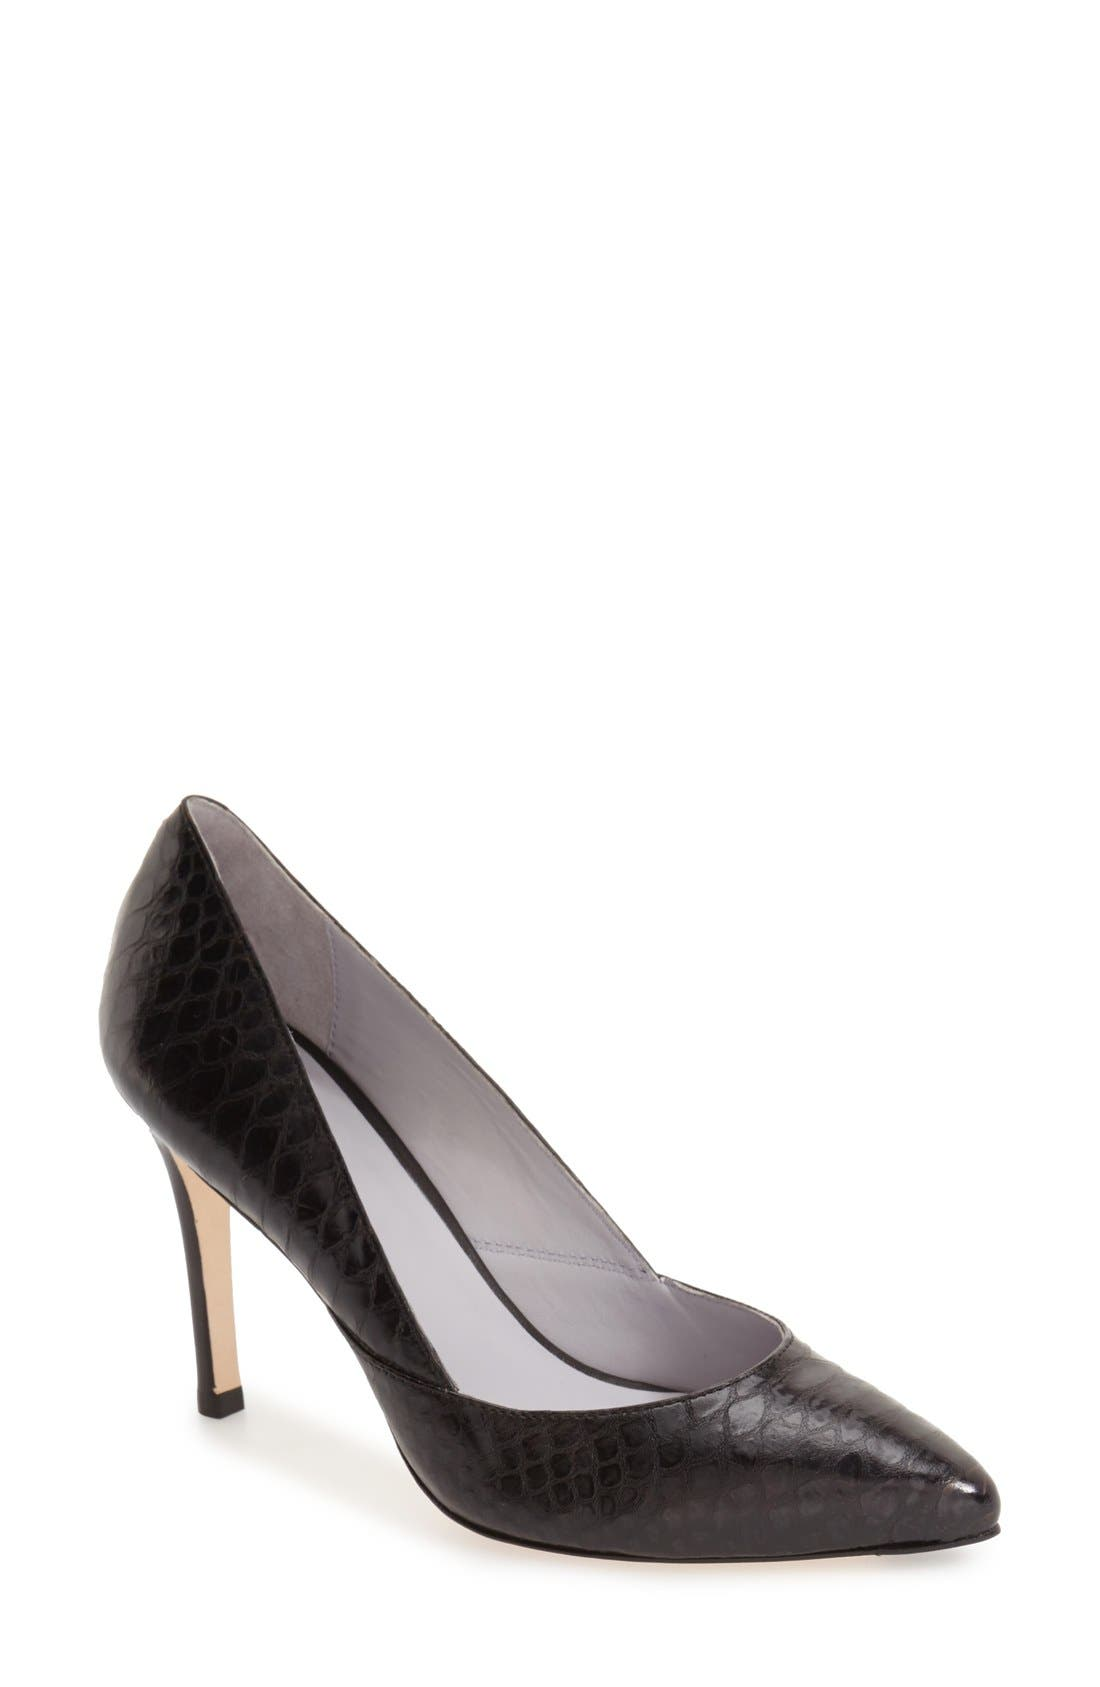 'Vanessa' Pointy Toe Leather Pump,                             Main thumbnail 6, color,